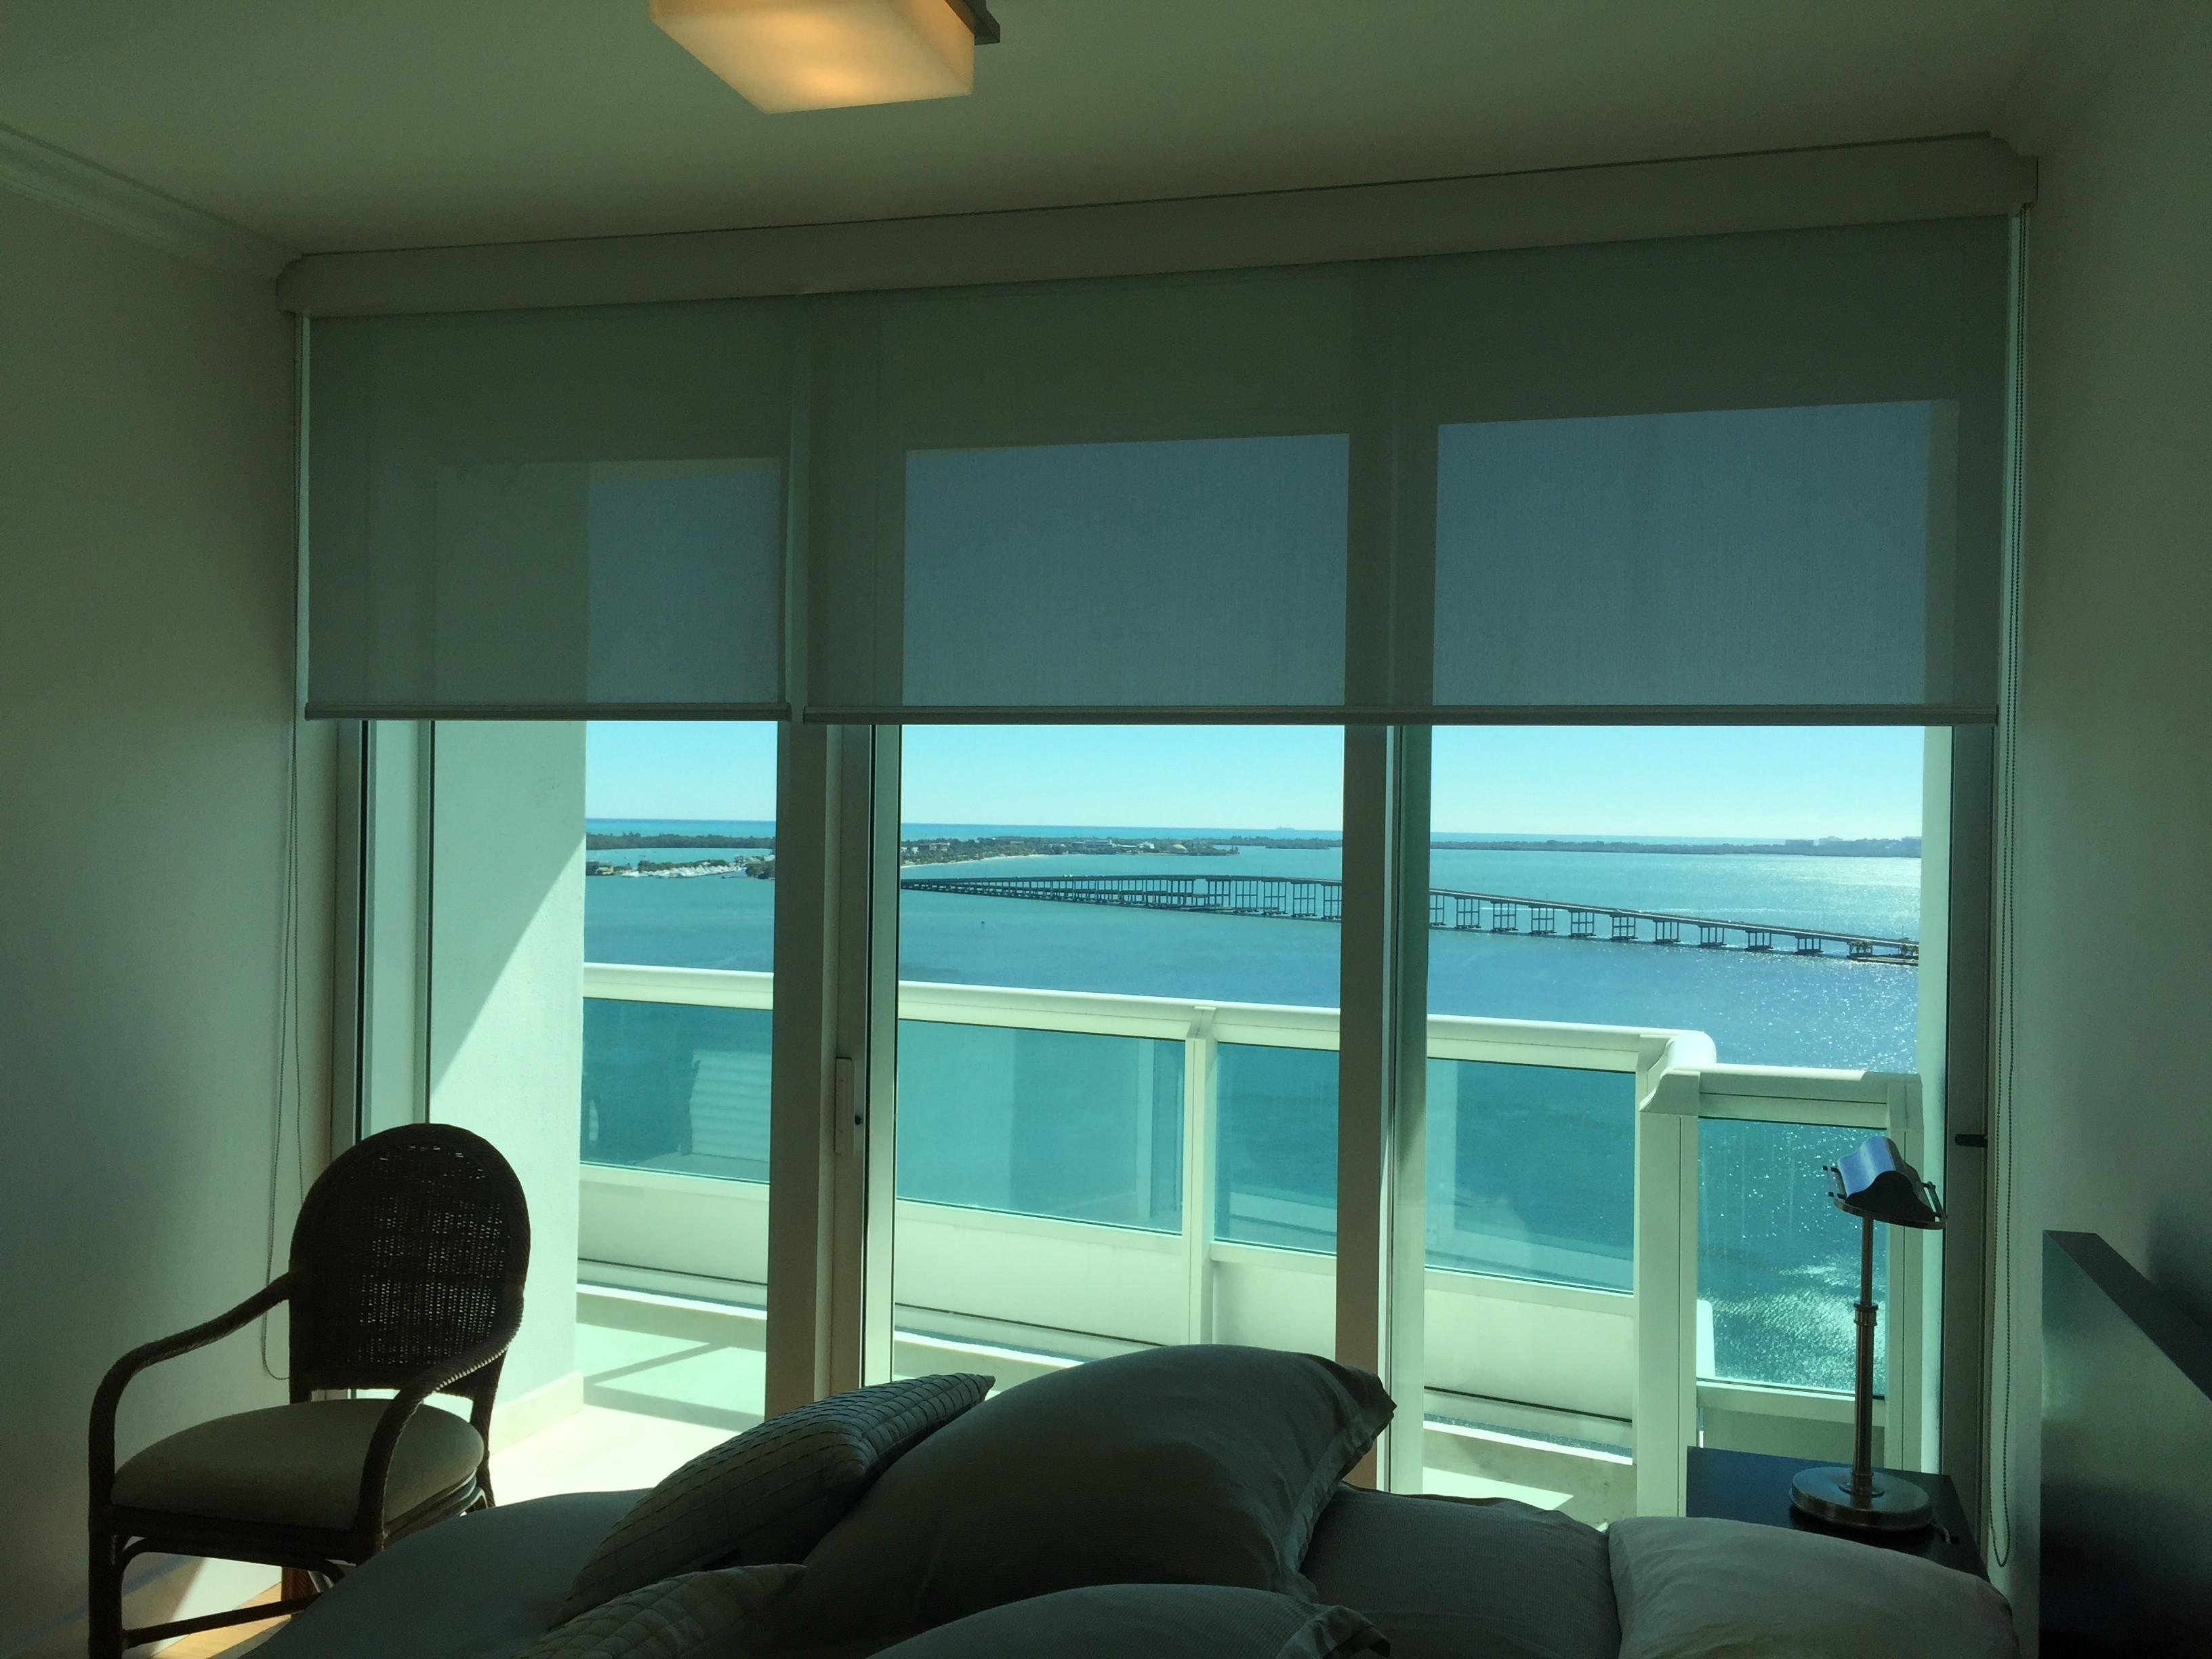 Automated Shades Blinds Drapes High End Smart Home